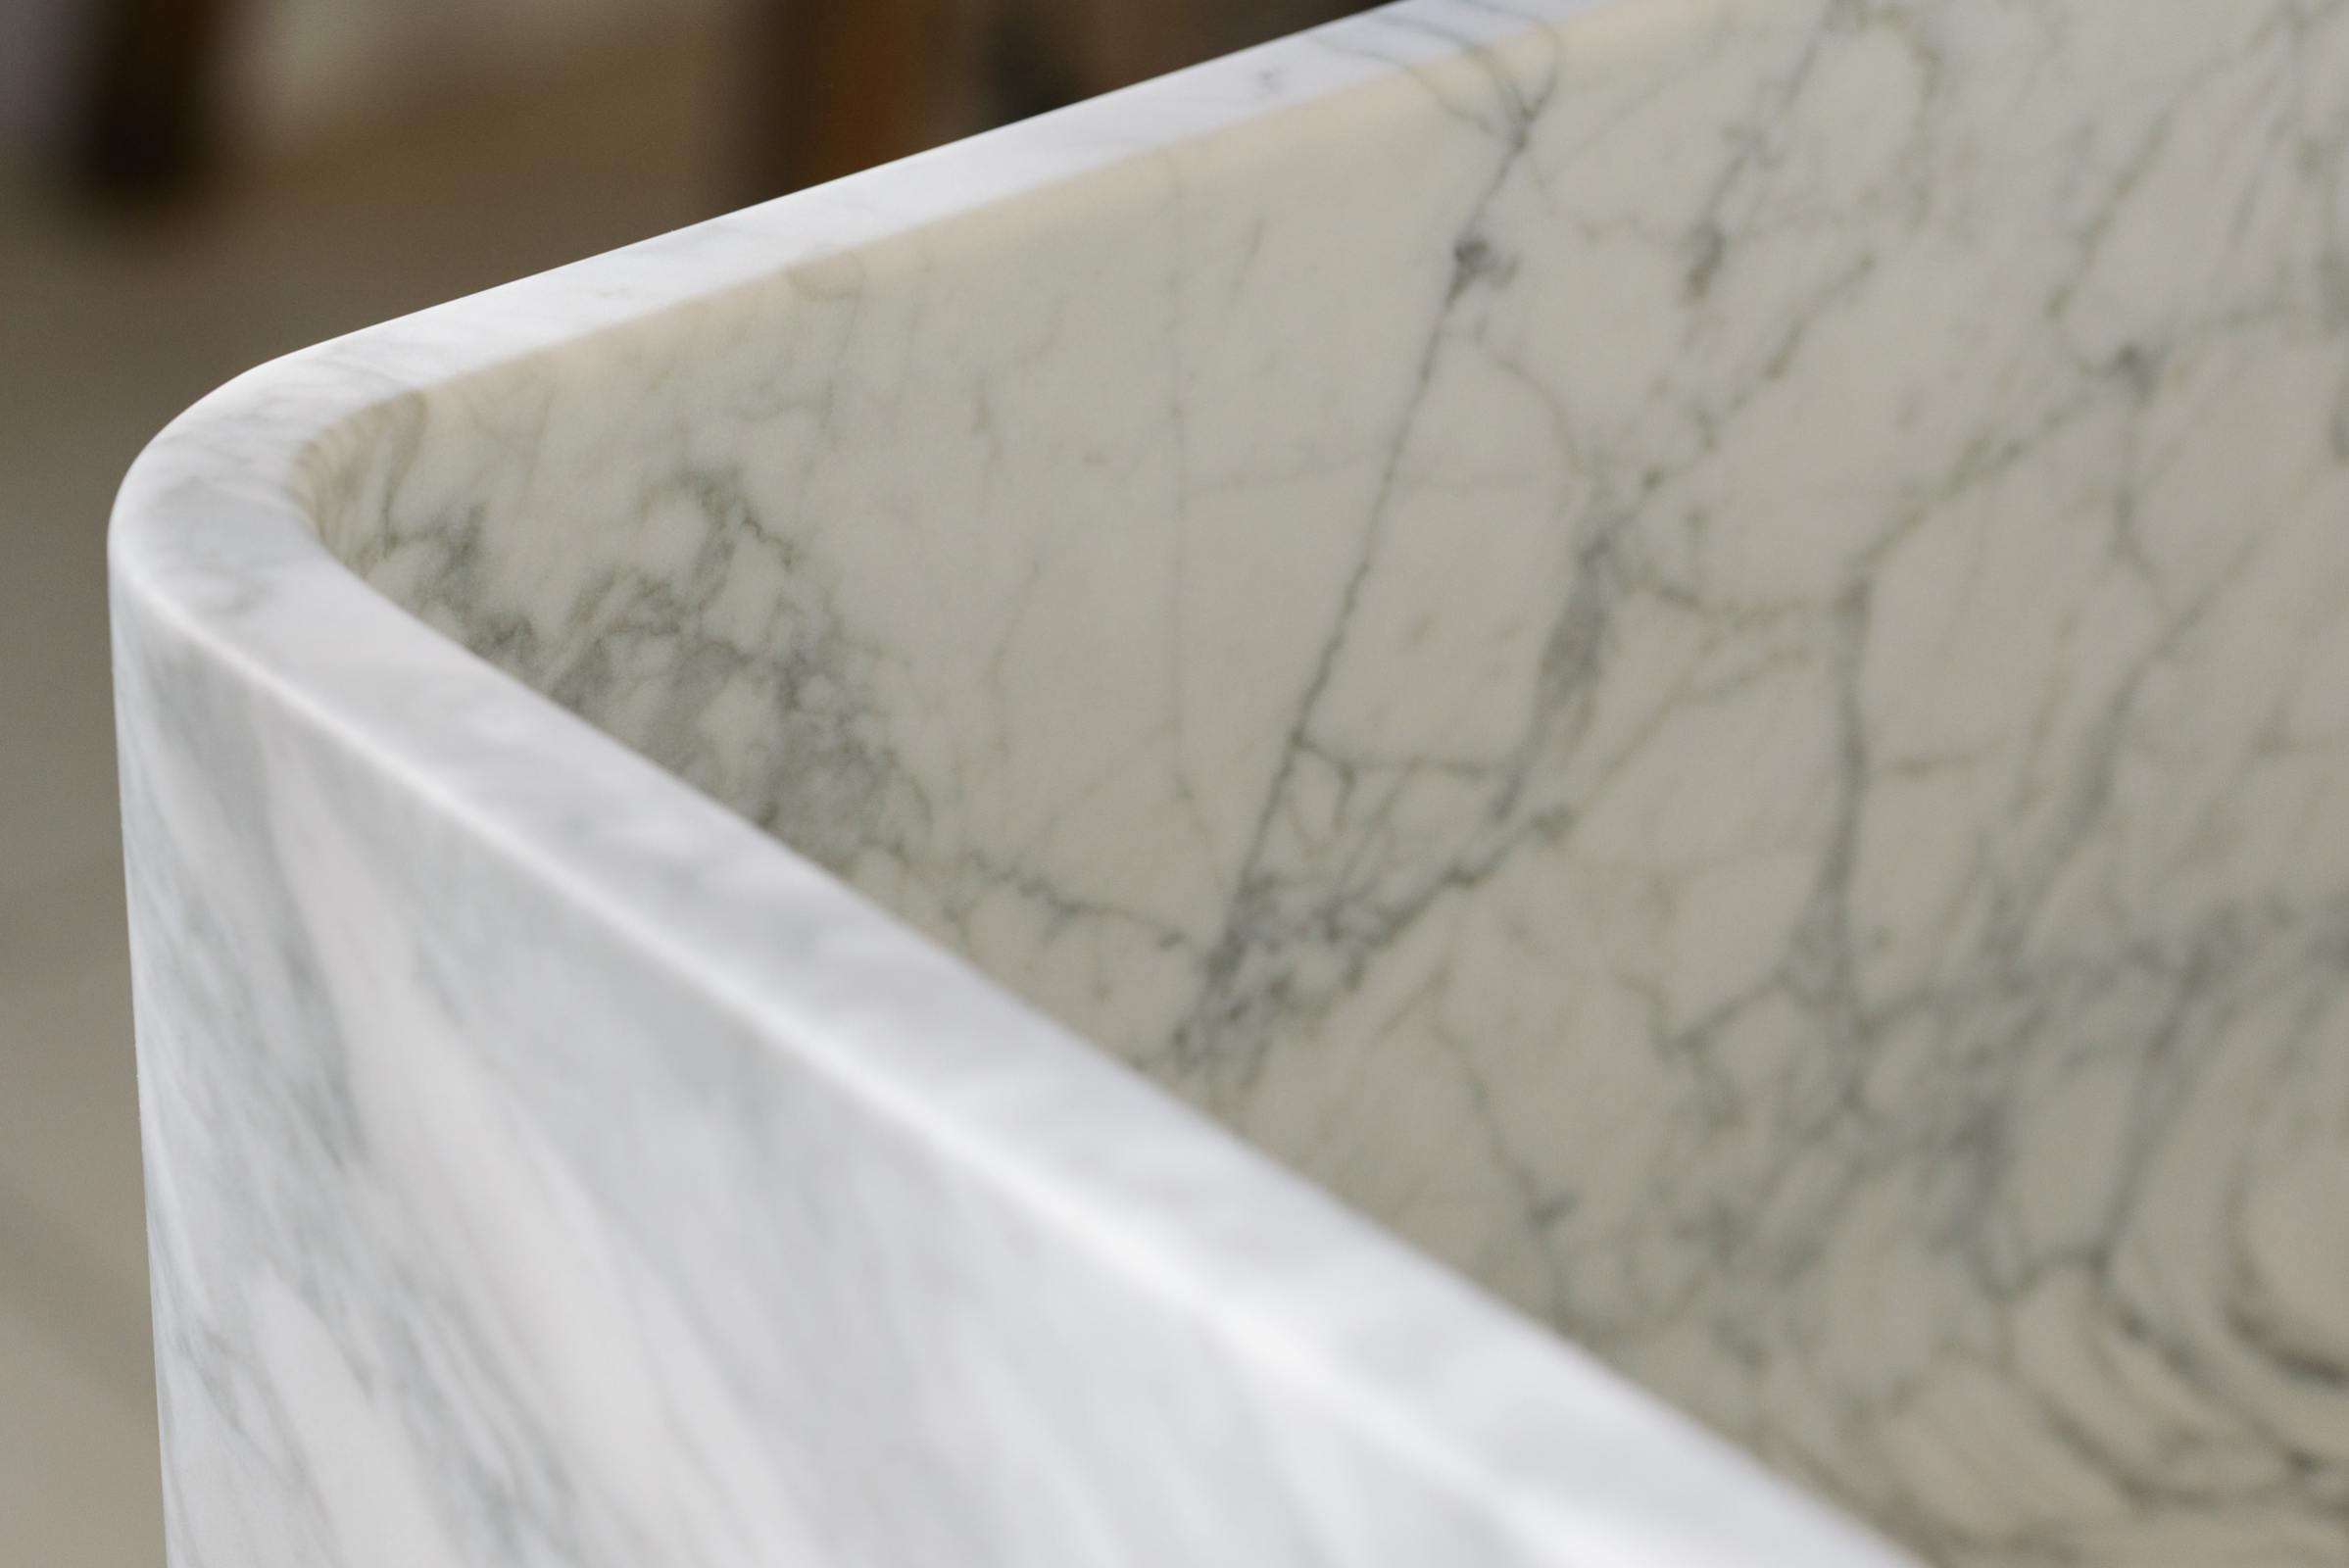 Milano Penthouse 31 1/2'' Single Marble Sink photo 5